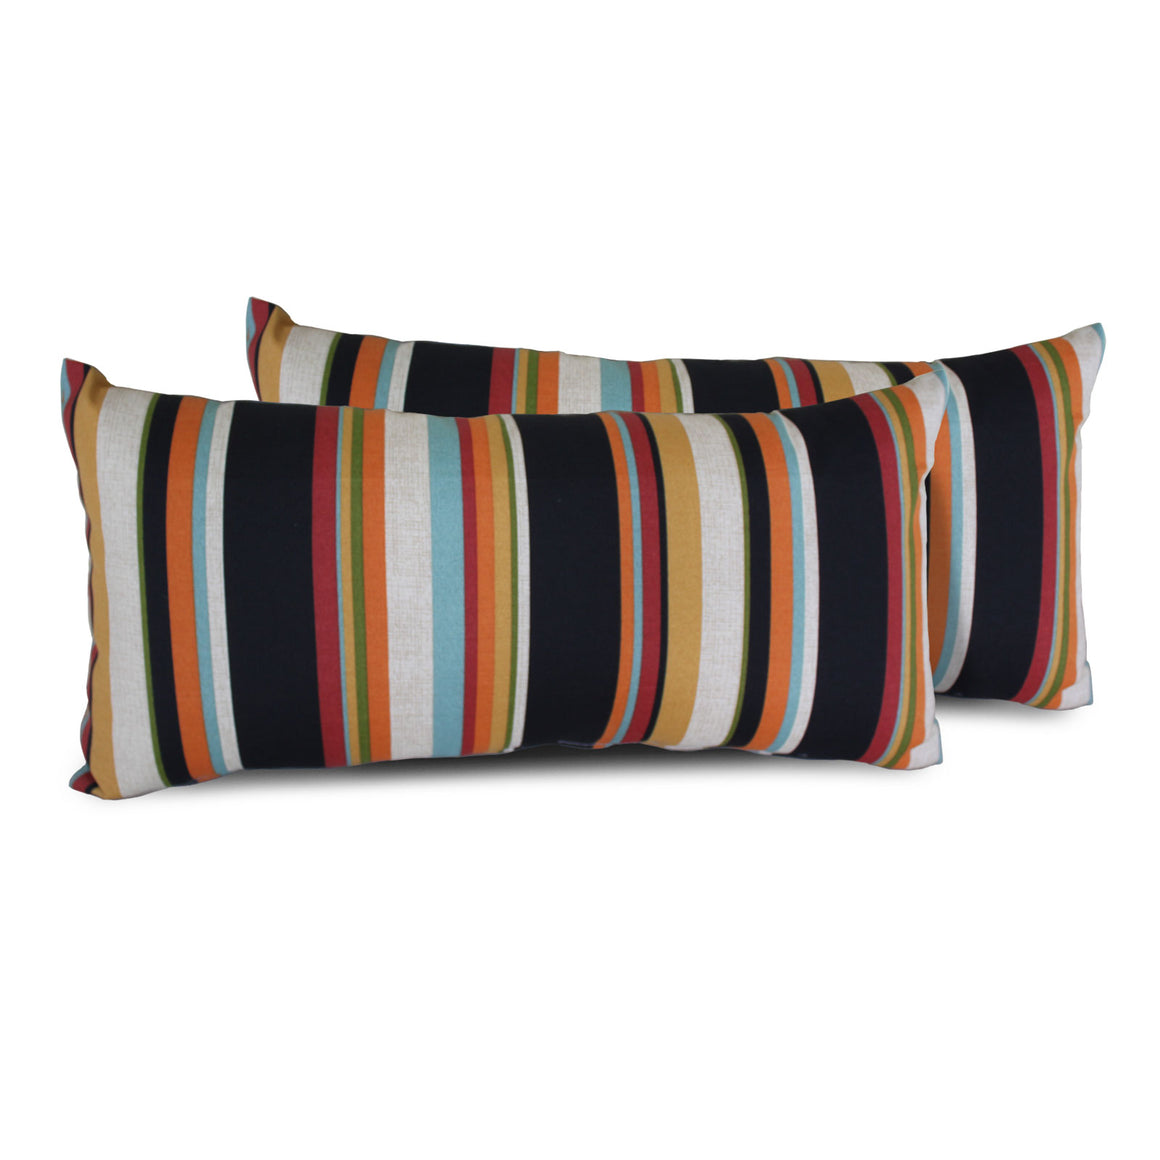 Villa Stripe Outdoor Throw Pillows Rectangle Set of 2 , TK Classics- grayburd